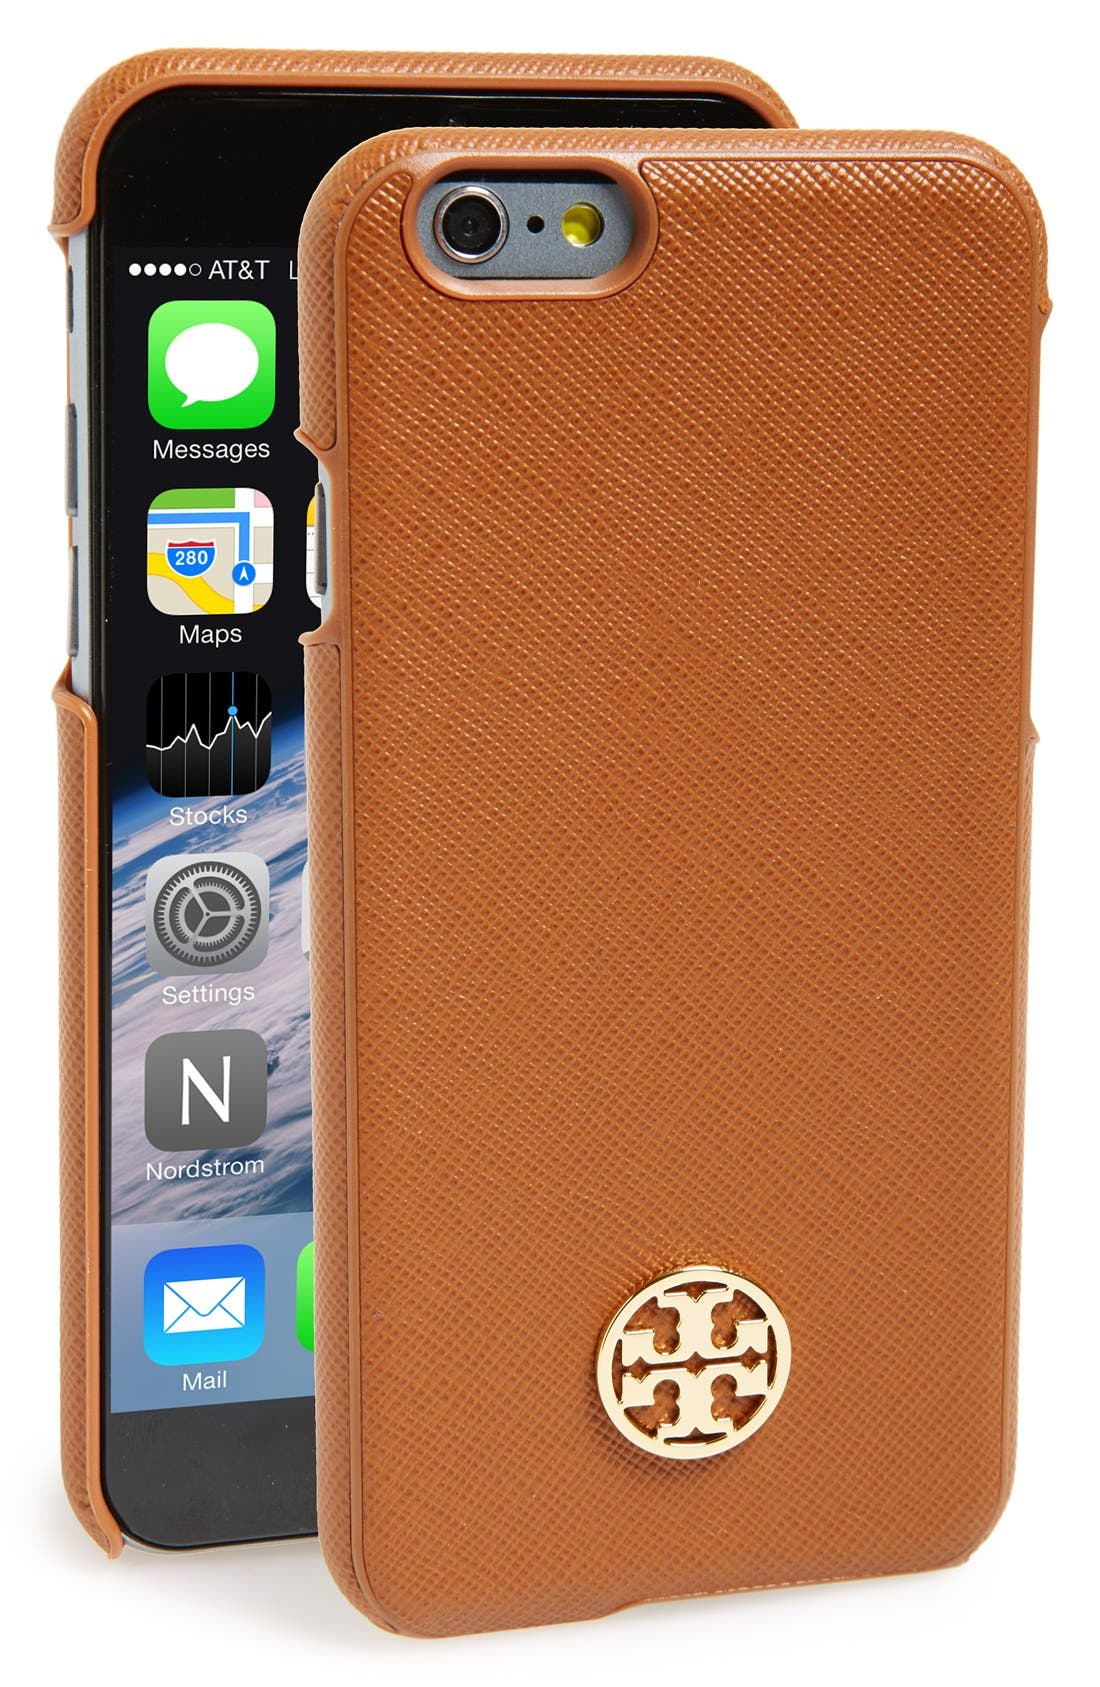 Alternate Image 1 Selected - Tory Burch 'Robinson' Saffiano Leather iPhone 6 Case